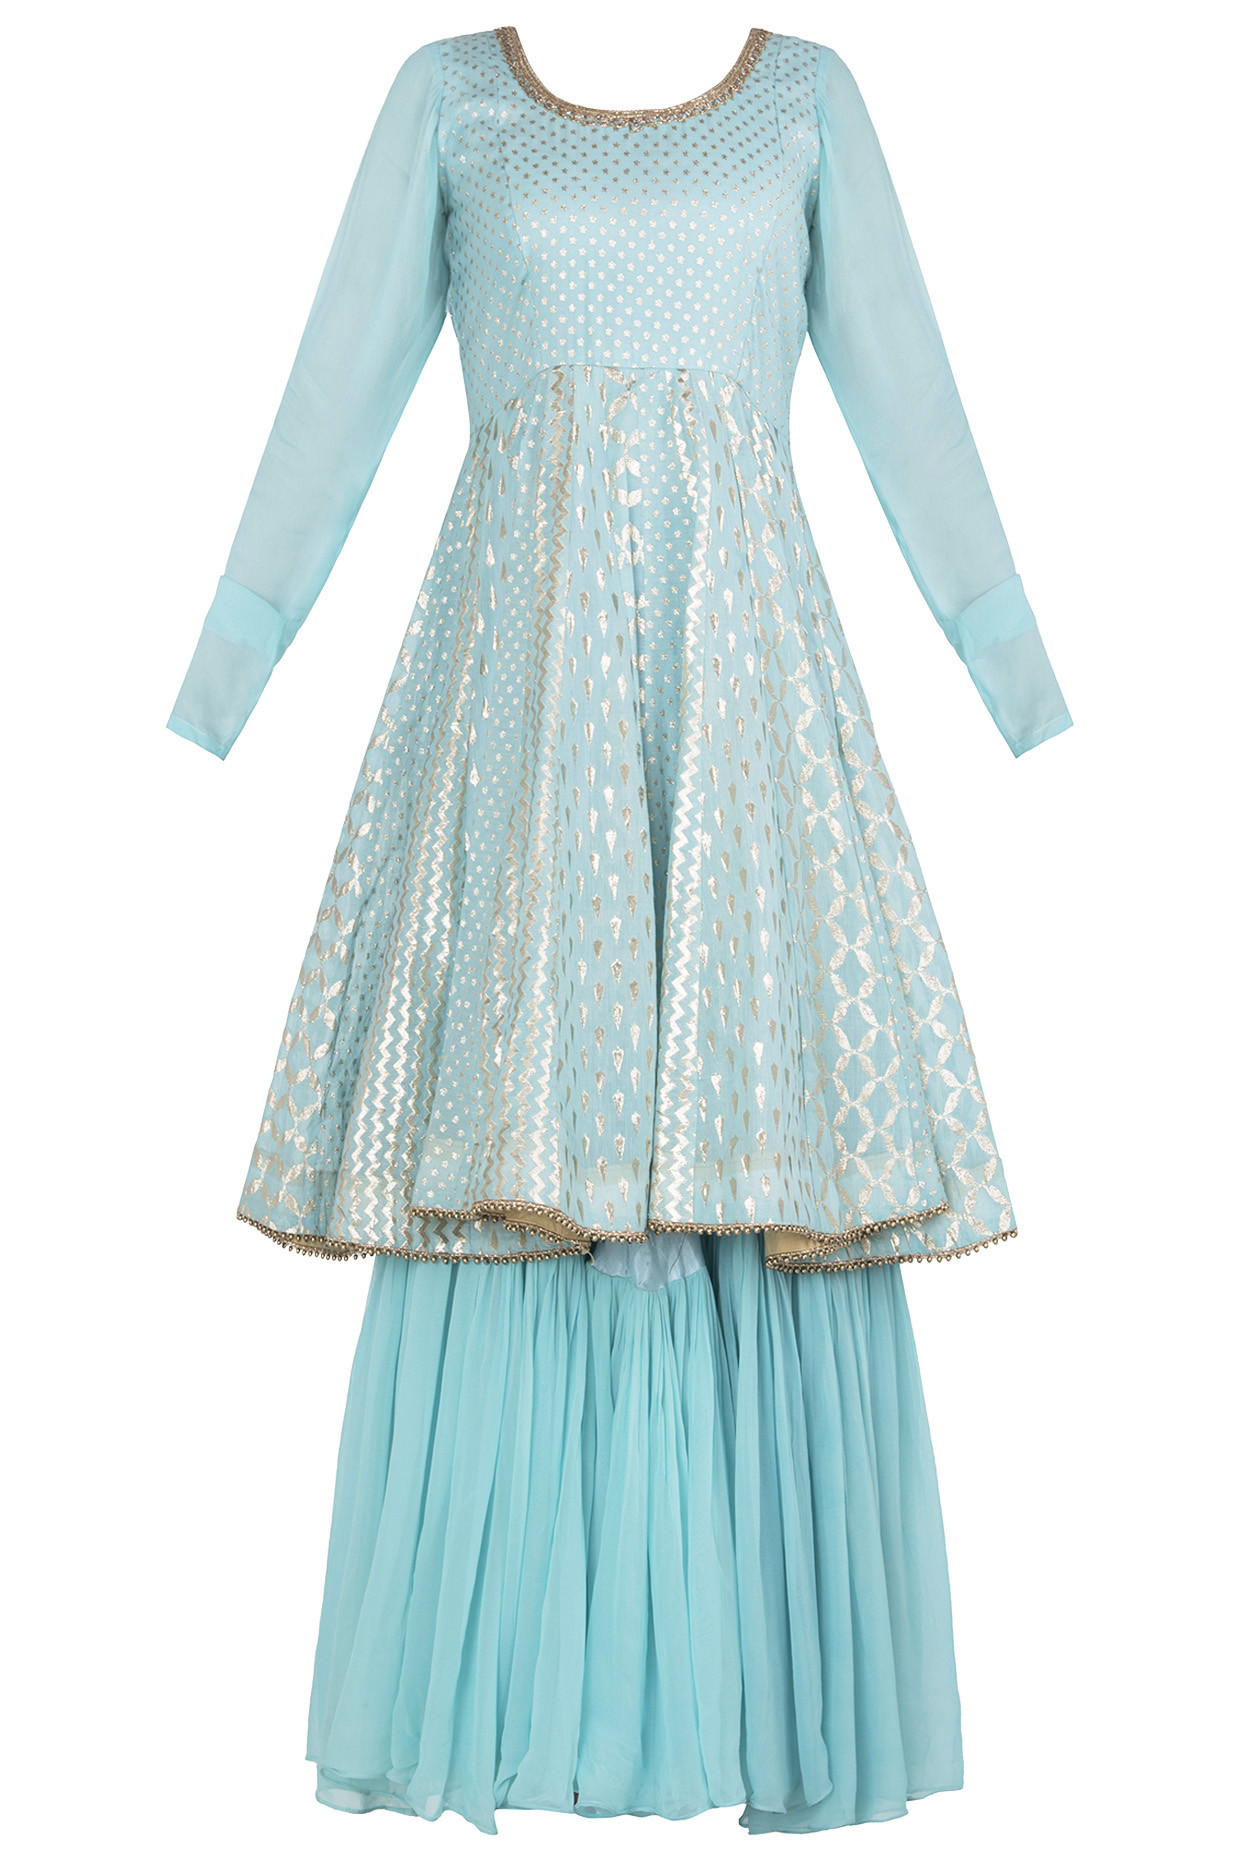 Blue Embellished Anarkali by Rishi & Vibhuti